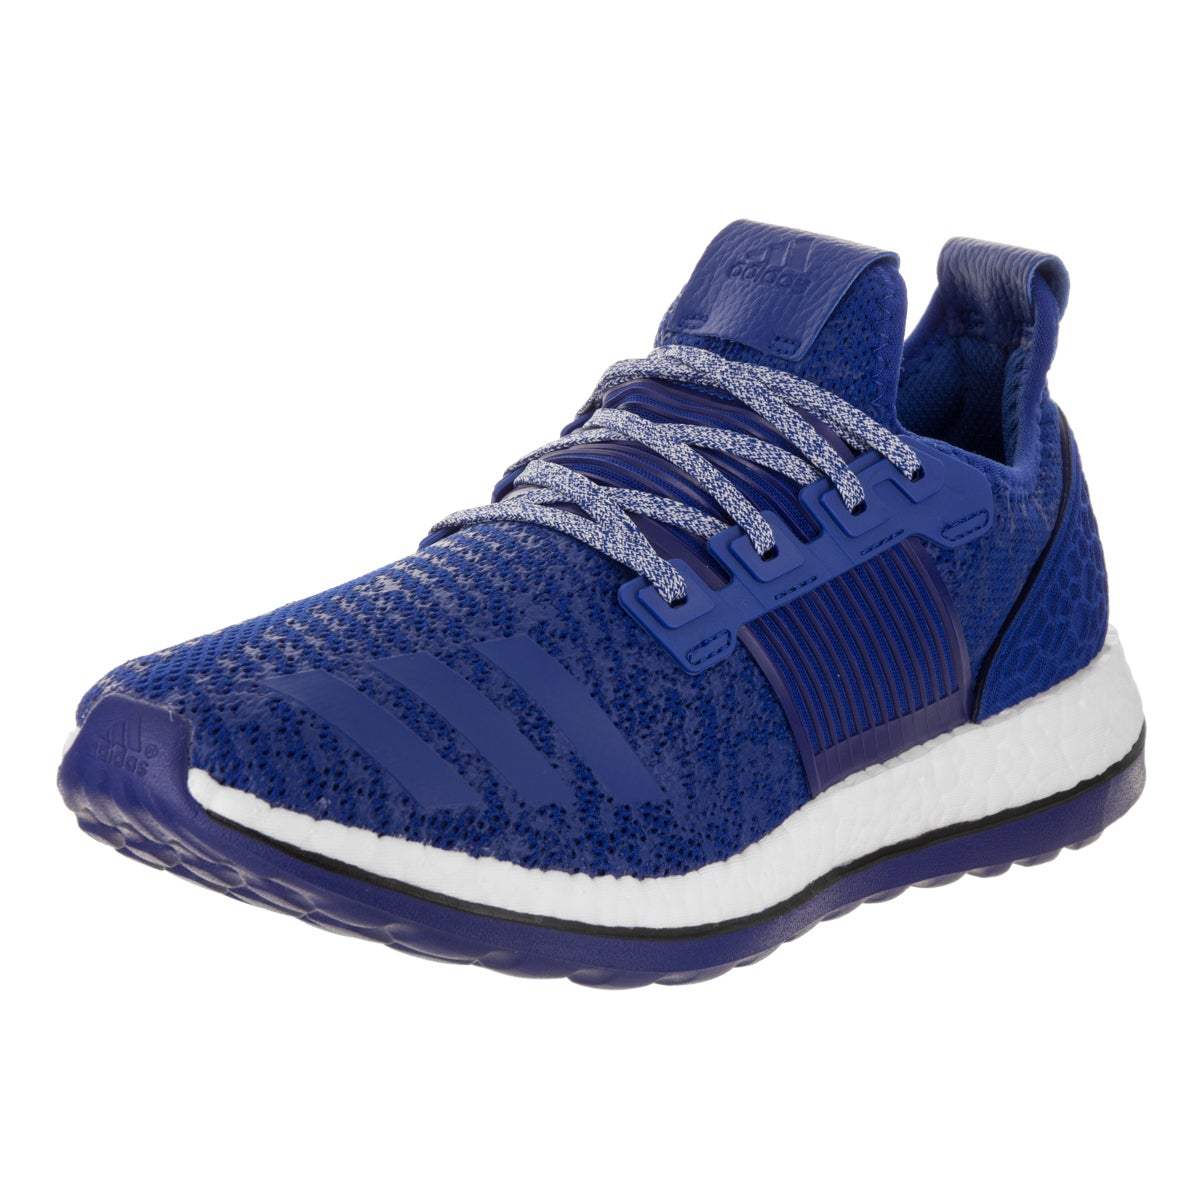 2788bd82d143f Shop Adidas Men s Pureboost ZG Running Shoe - Free Shipping Today -  Overstock.com - 16939672